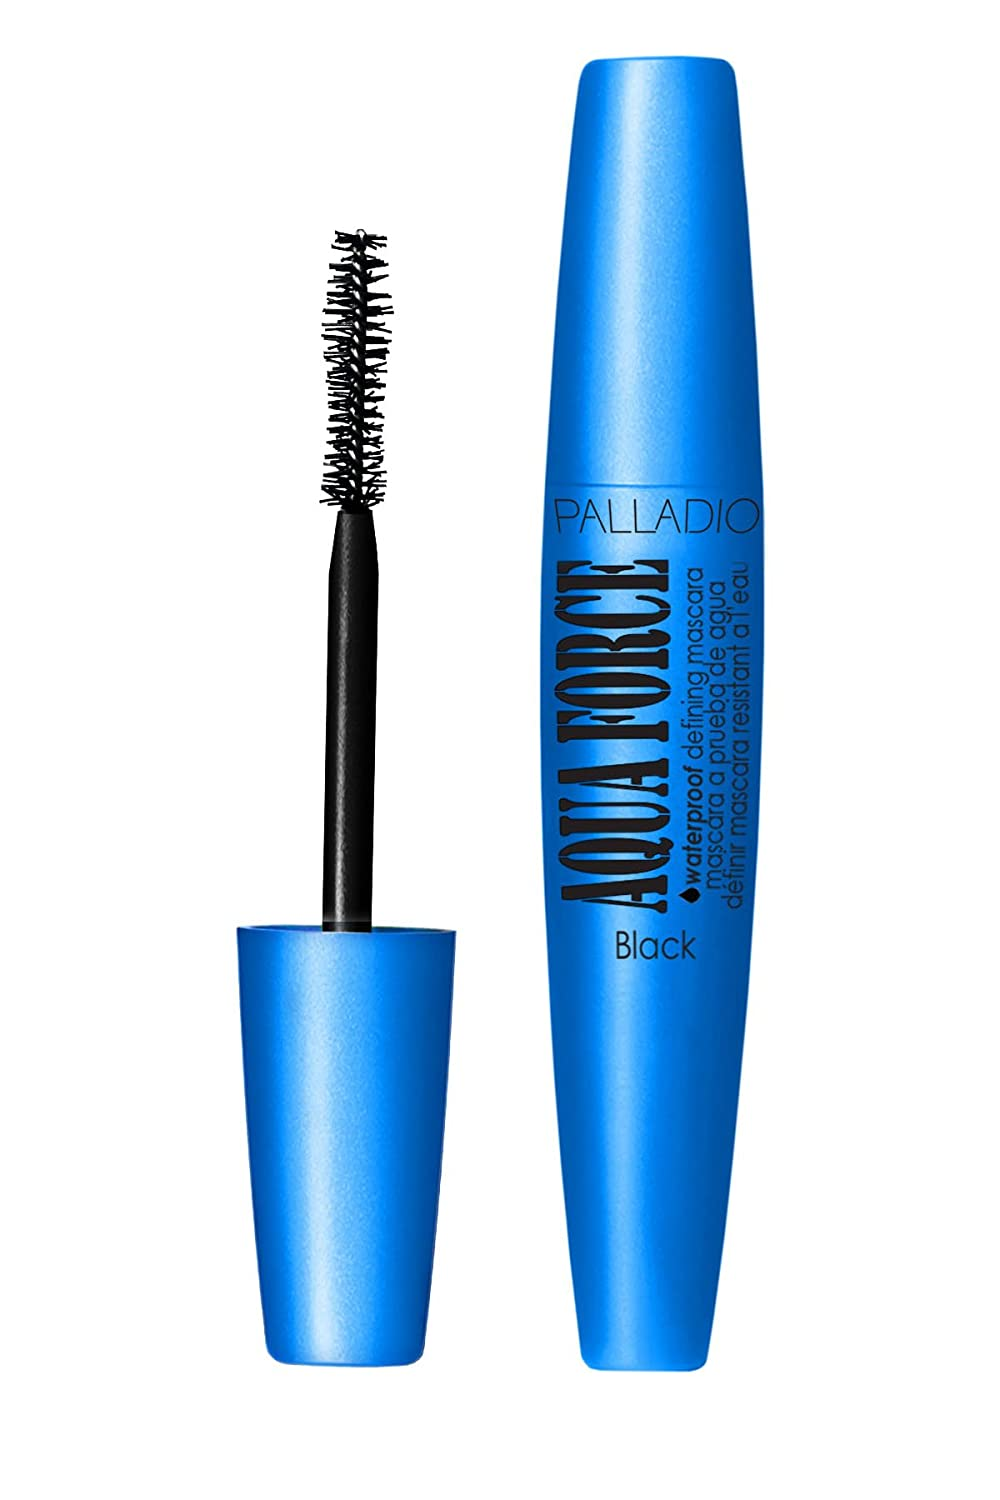 Amazon.com : Palladio Aqua Force Waterproof Defining Mascara, Brown : Beauty